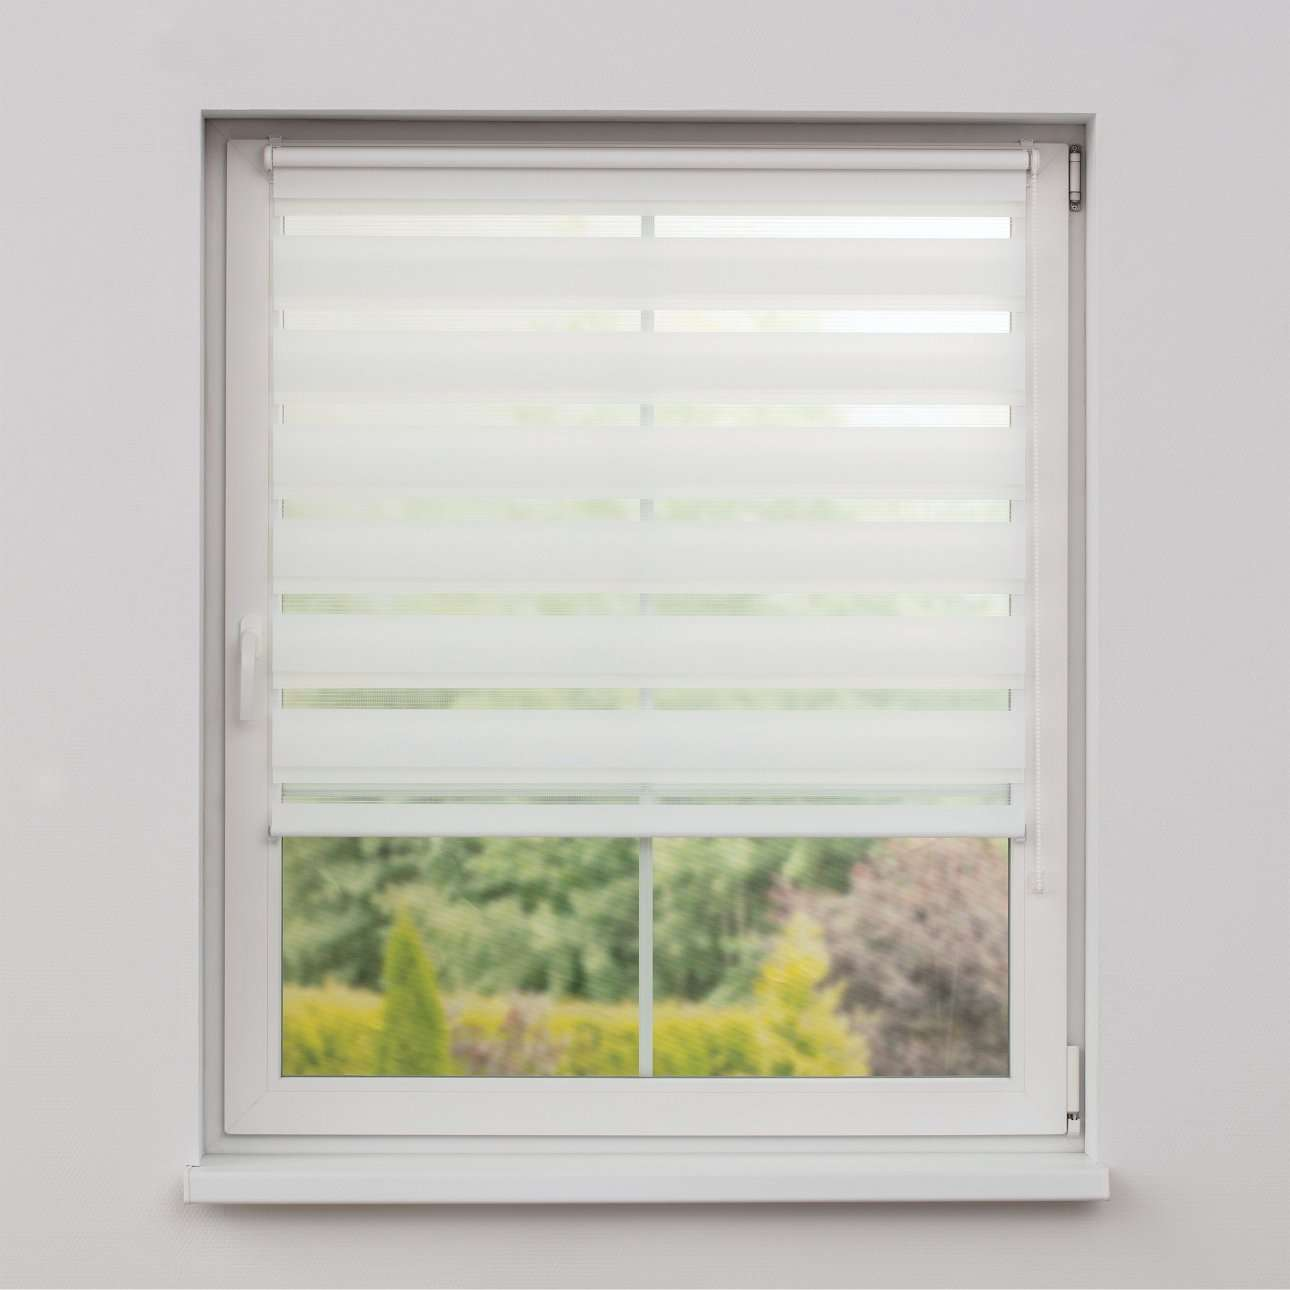 Day And Night Roller Blind Is An Innovative Practical And Cost Efficient Window Treatment Which Works Like A Venetian Blind The Clever Combination Of